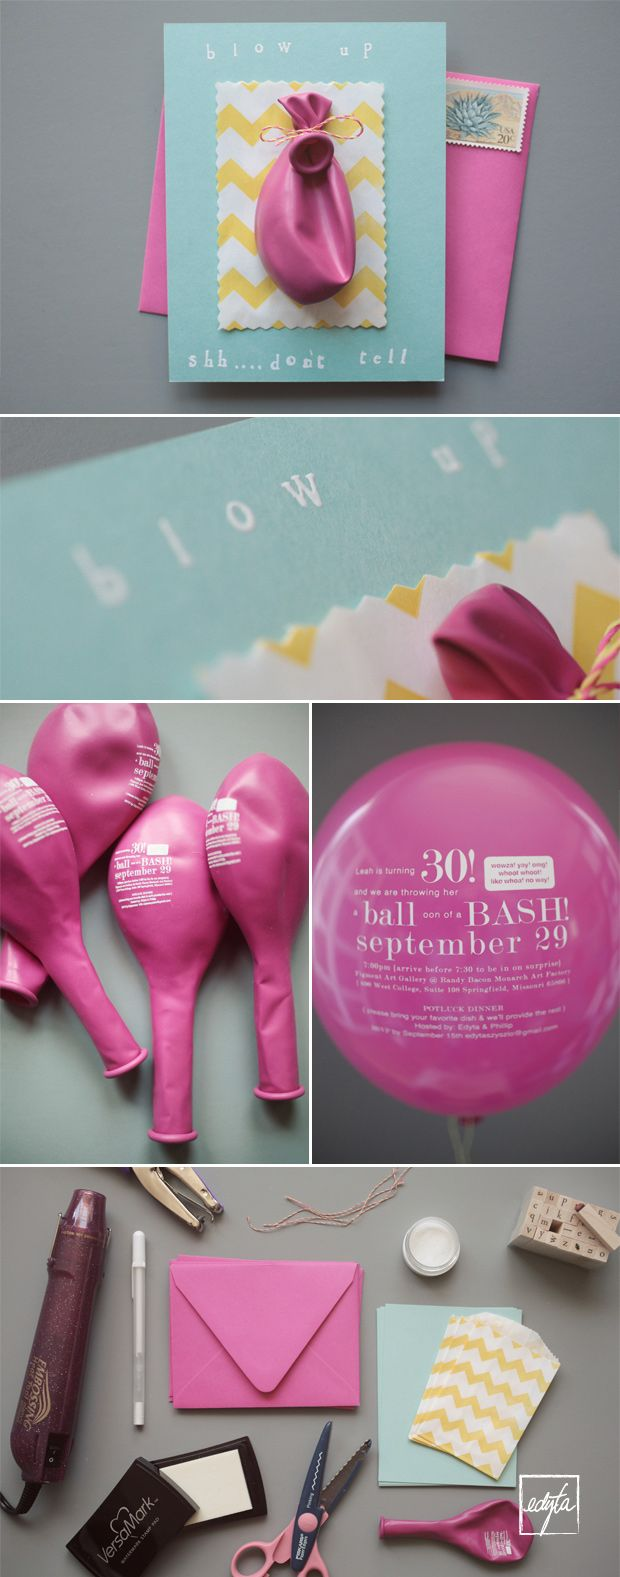 sweet invite You blow up the balloon The balloon is the invite – Diy Birthday Party Invitations